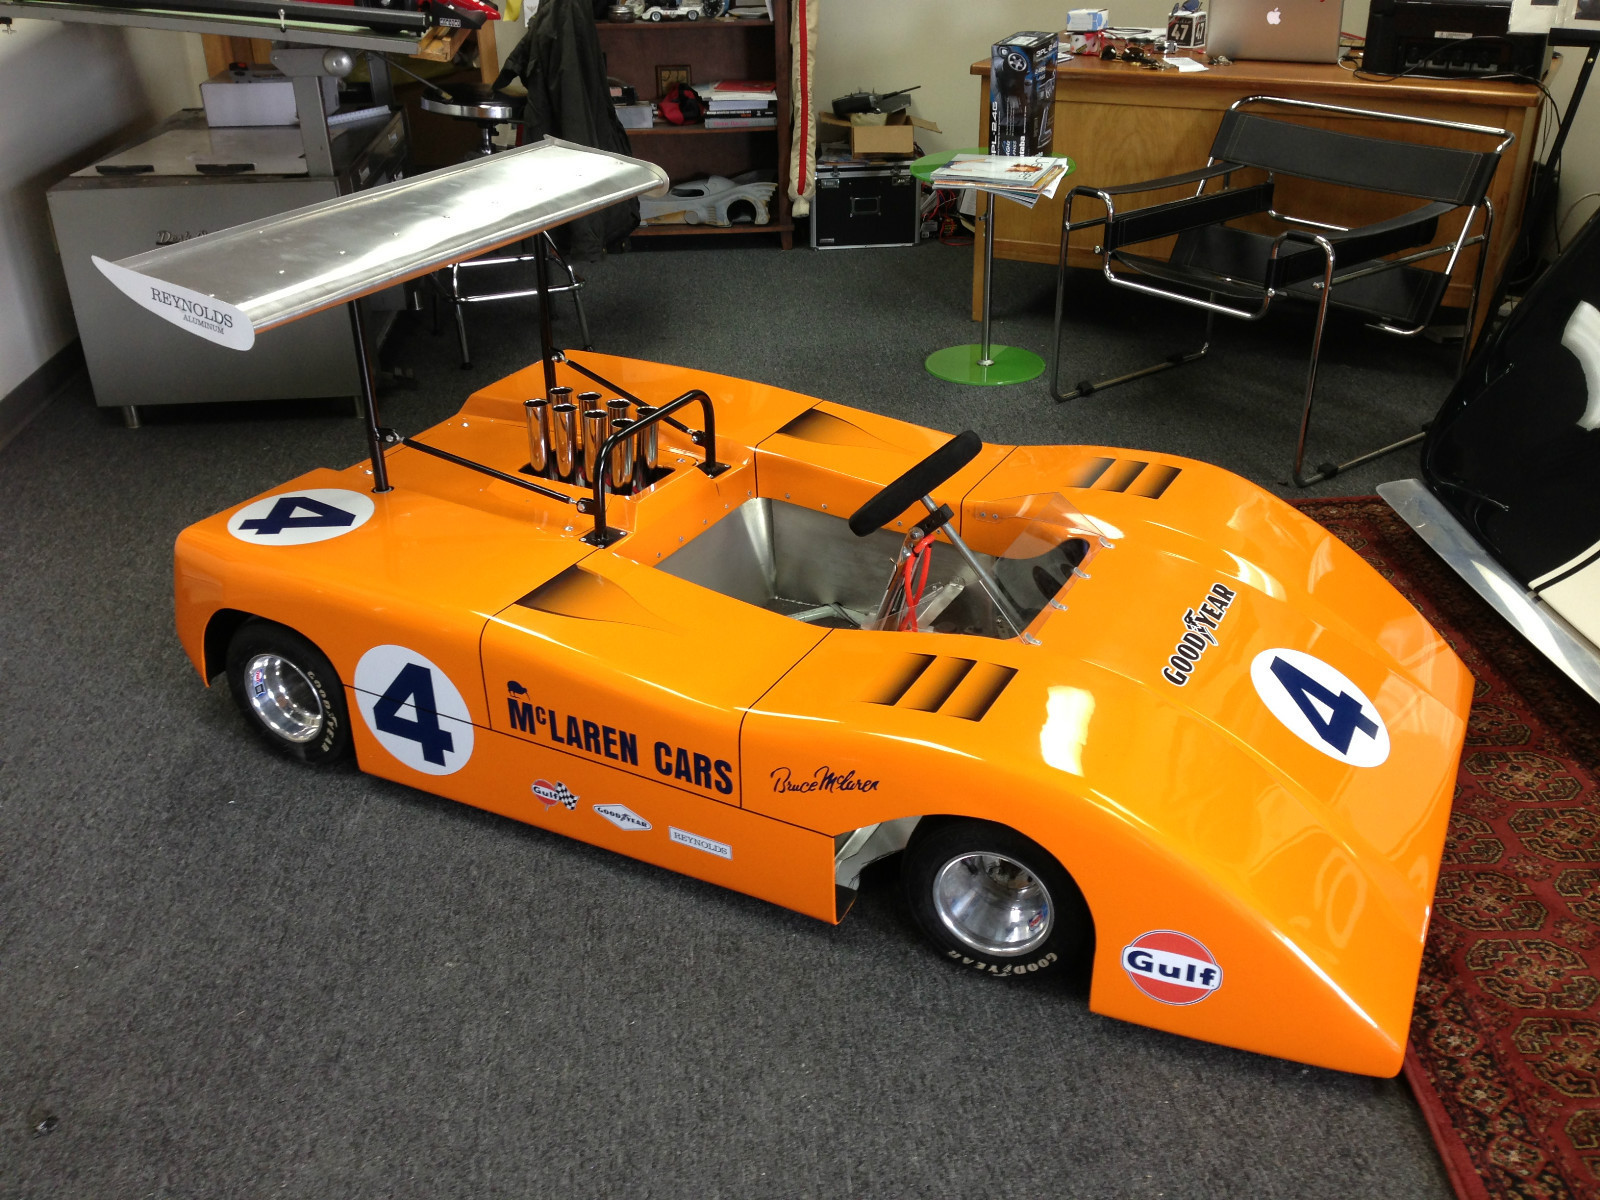 This Half-Scale McLaren Can-Am Car Is Absolutely Genius And For Sale On eBay!